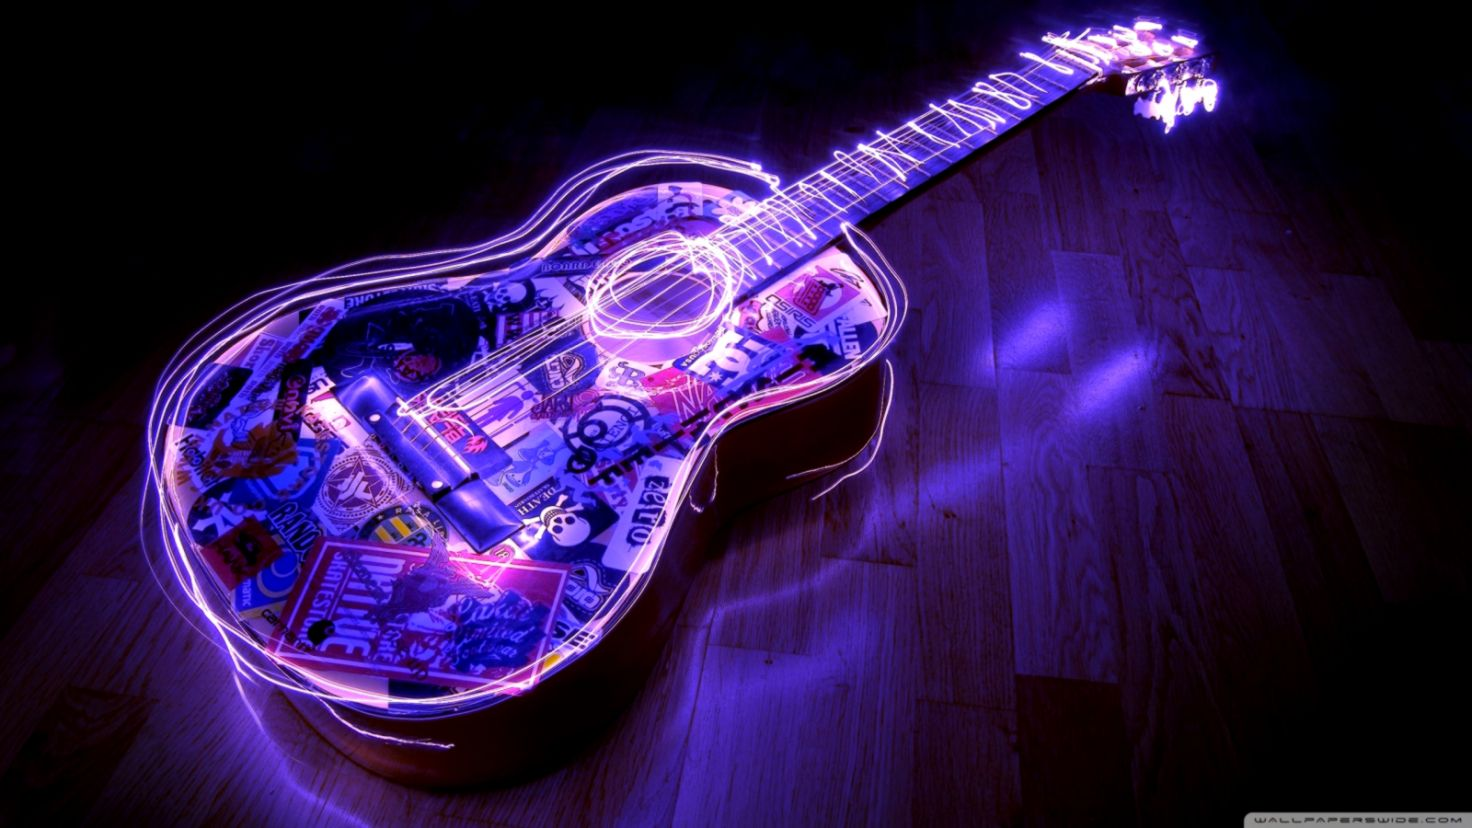 Guitar Art Hd Wallpaper Wallpapers Gallery